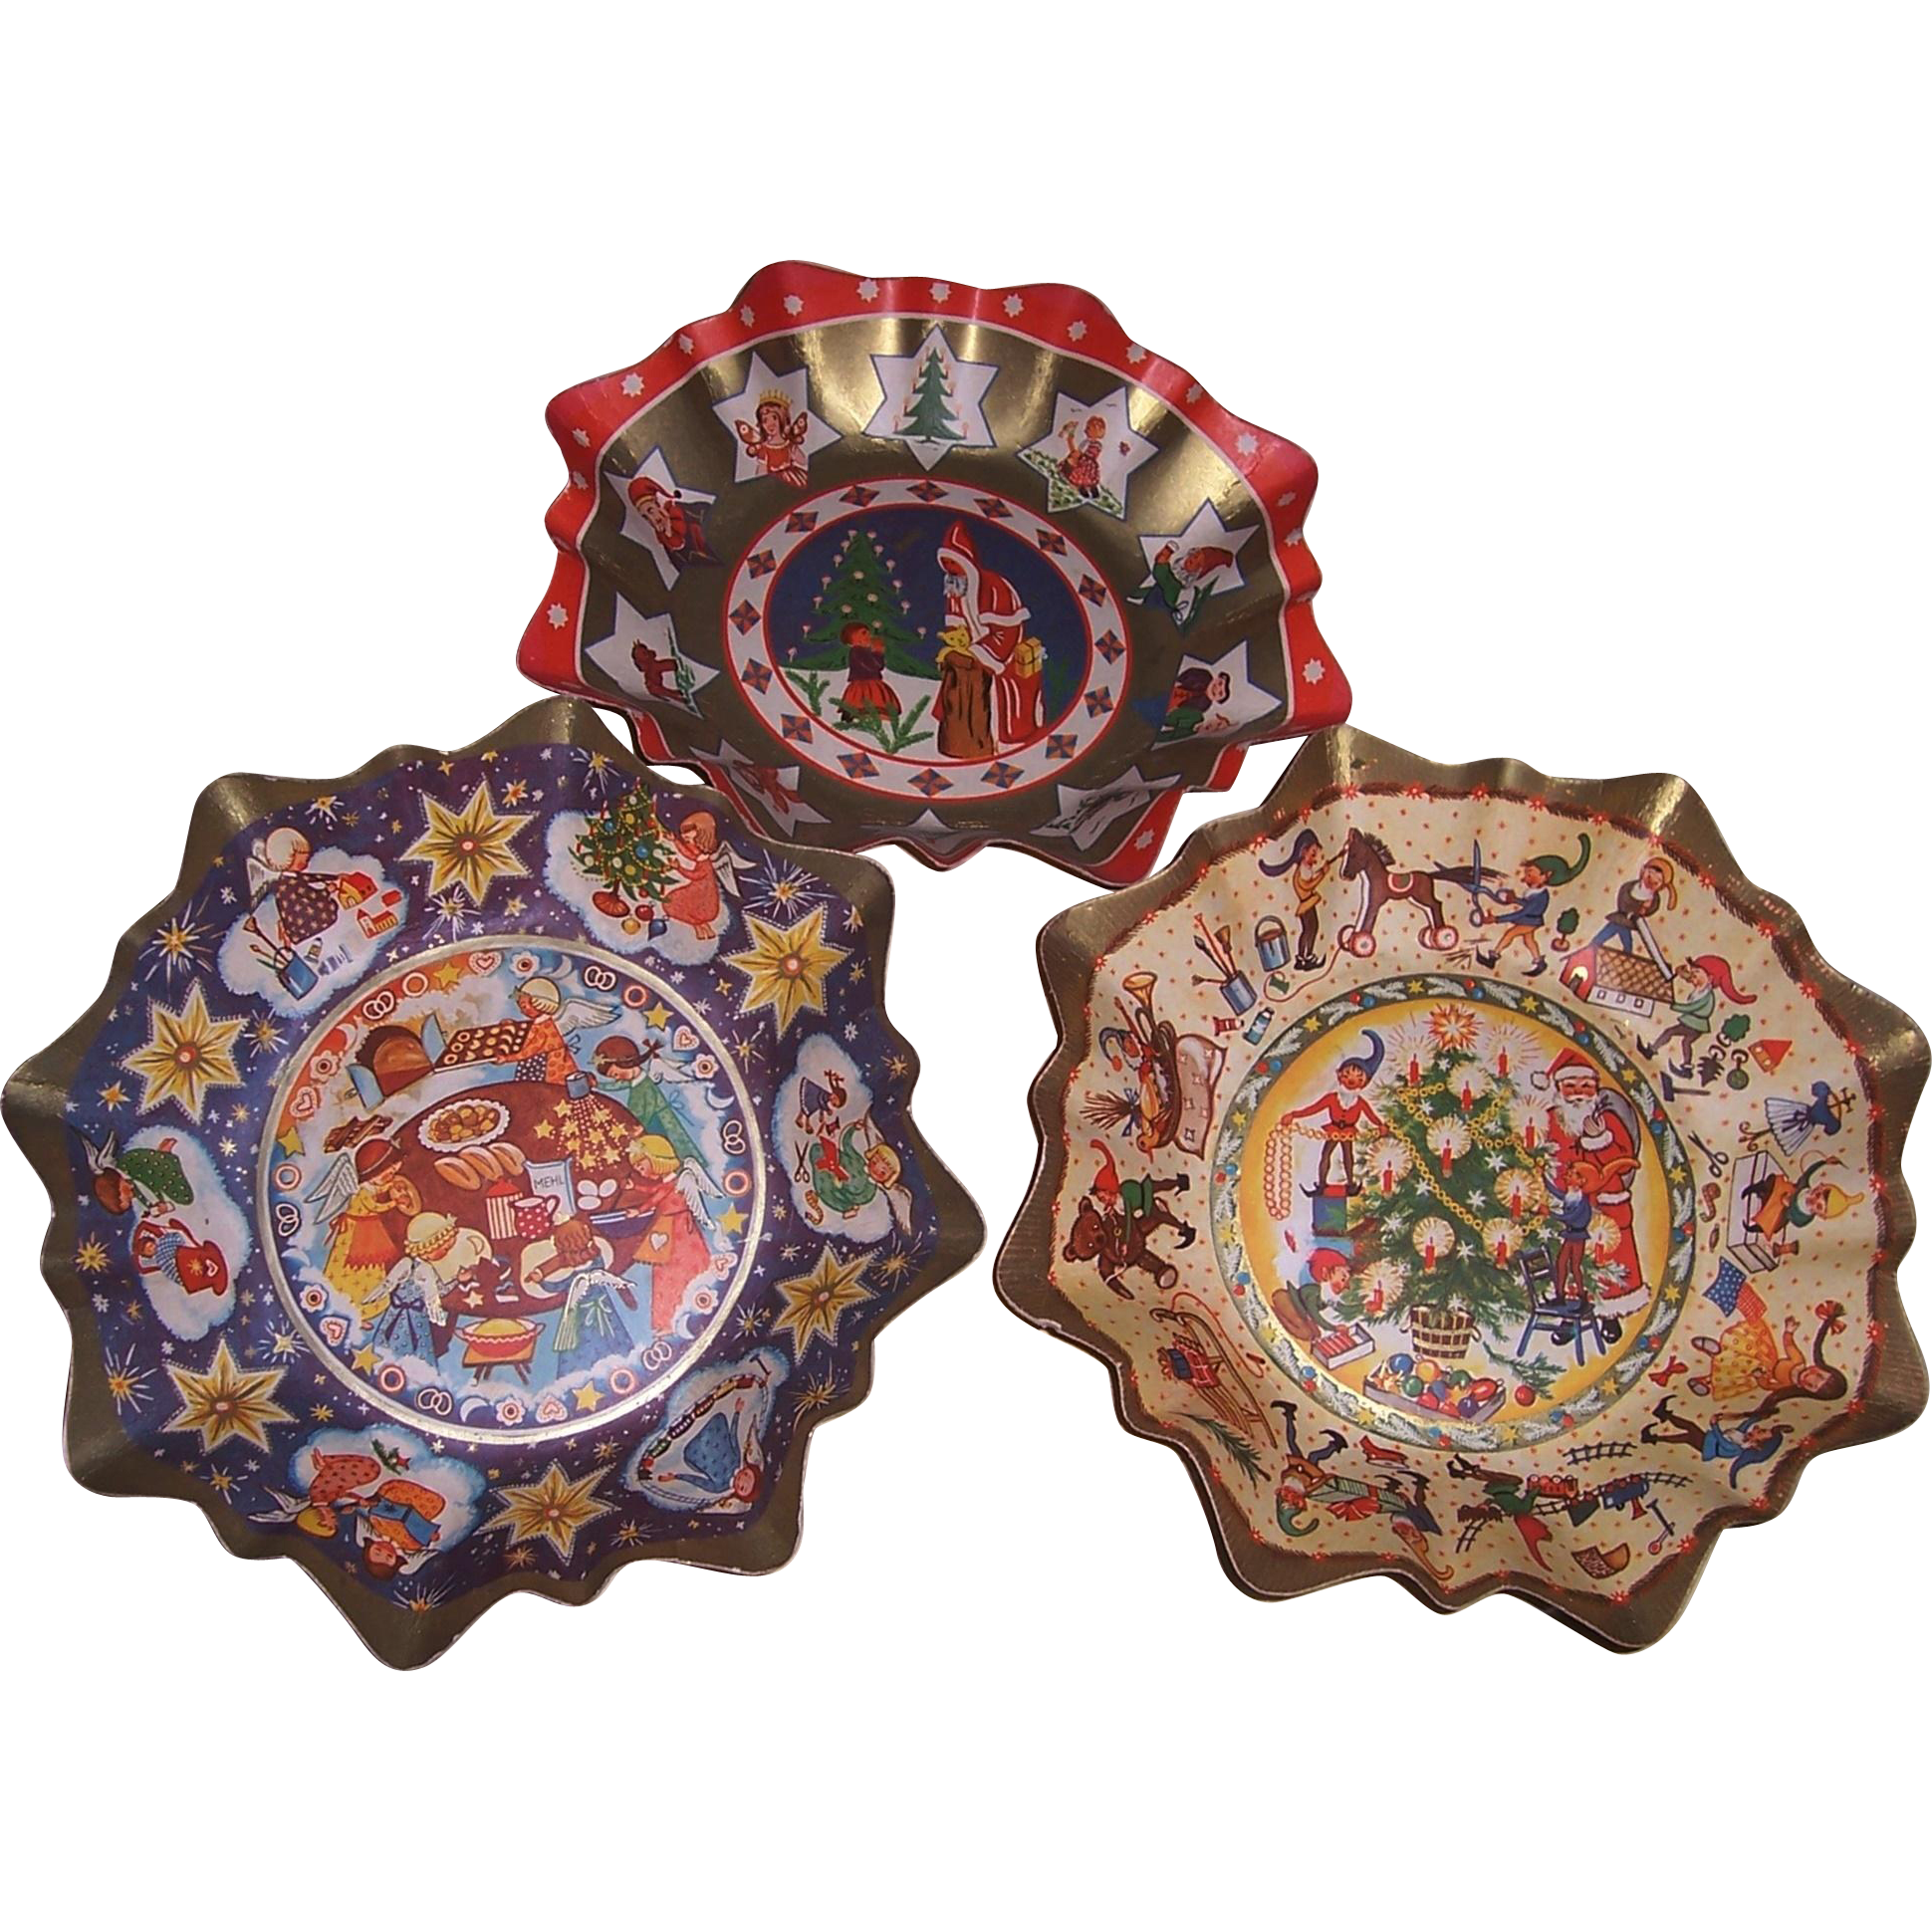 Three Early 20th Century Fluted Pressed Cardboard Christmas Bowls Made in Germany